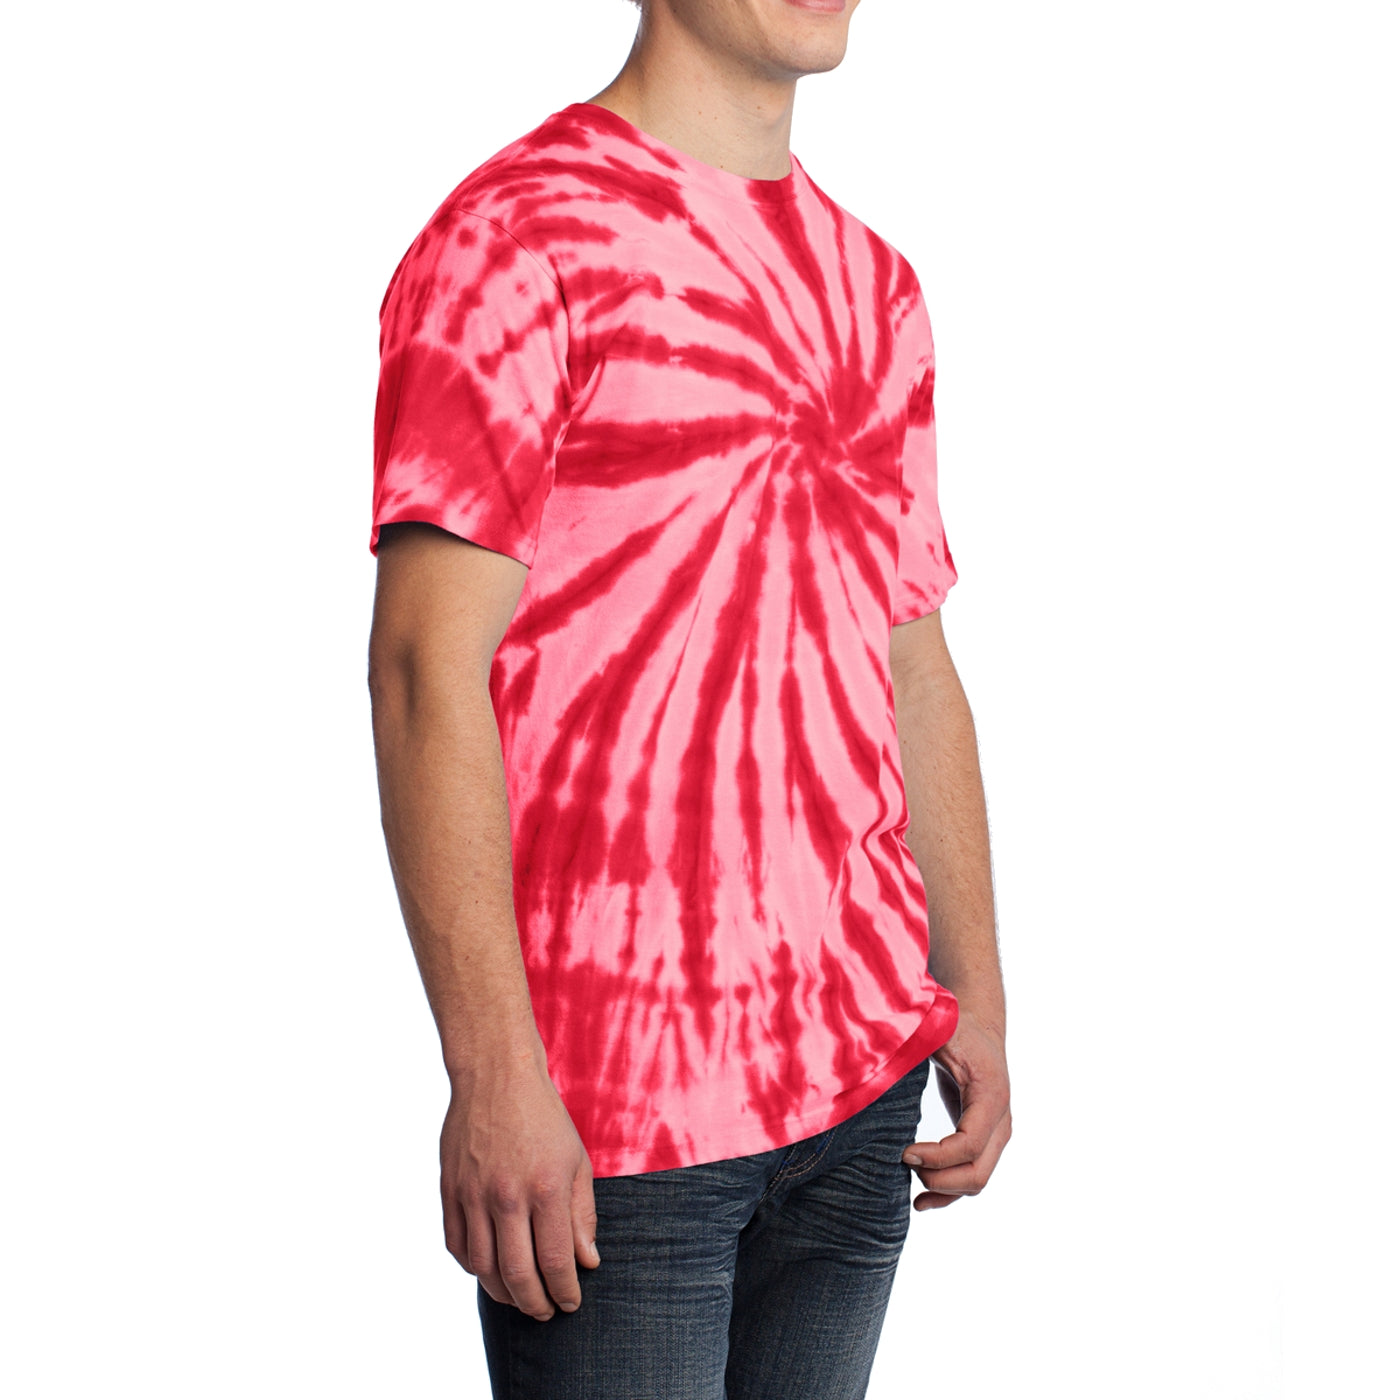 Men's Tie-Dye Tee - Red - Side